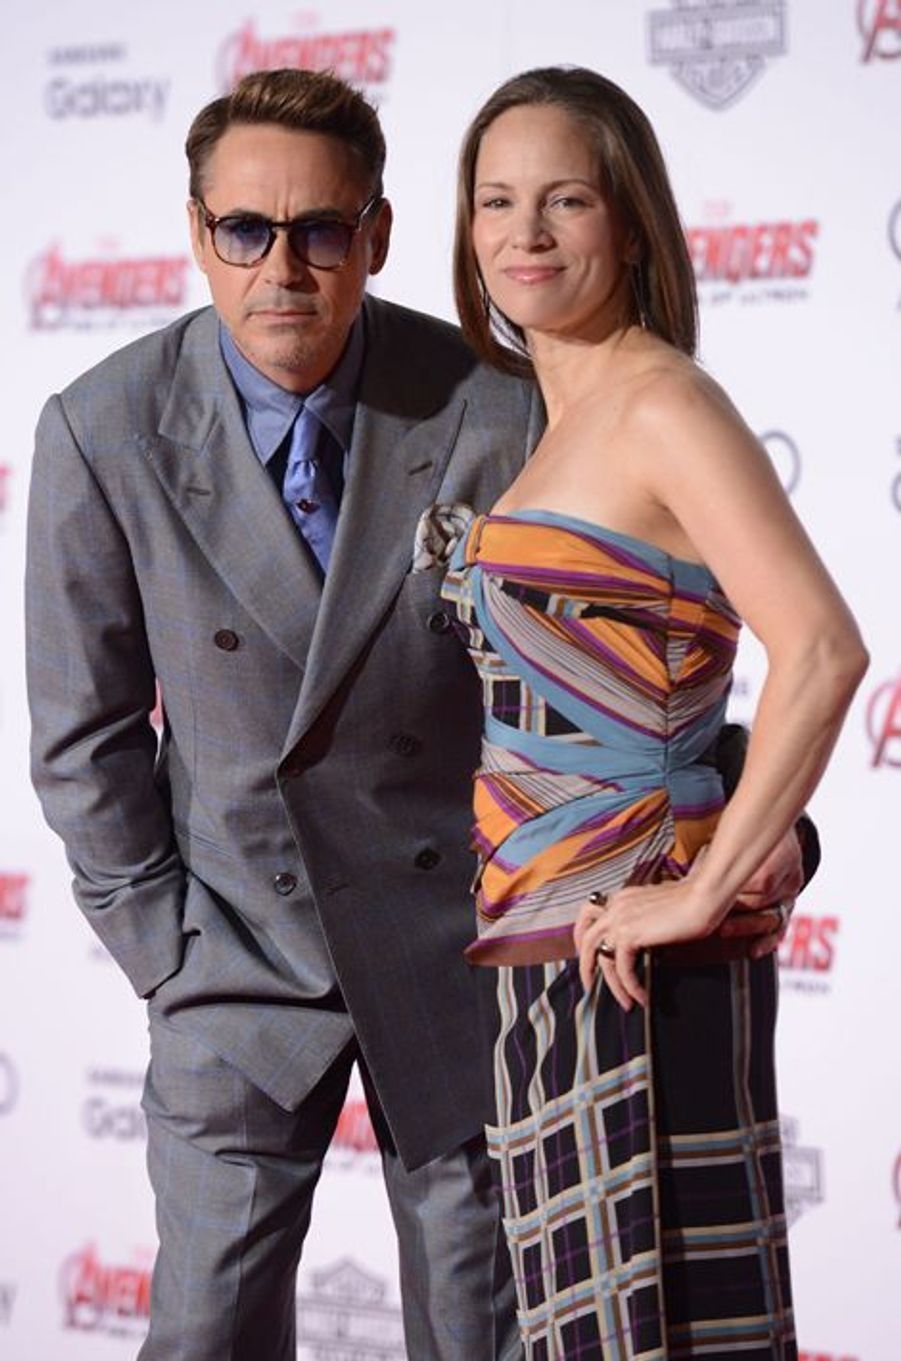 Robert Downey Jr. et son épouse, Susan Nicole Levin, à Los Angeles le 13 avril 2015